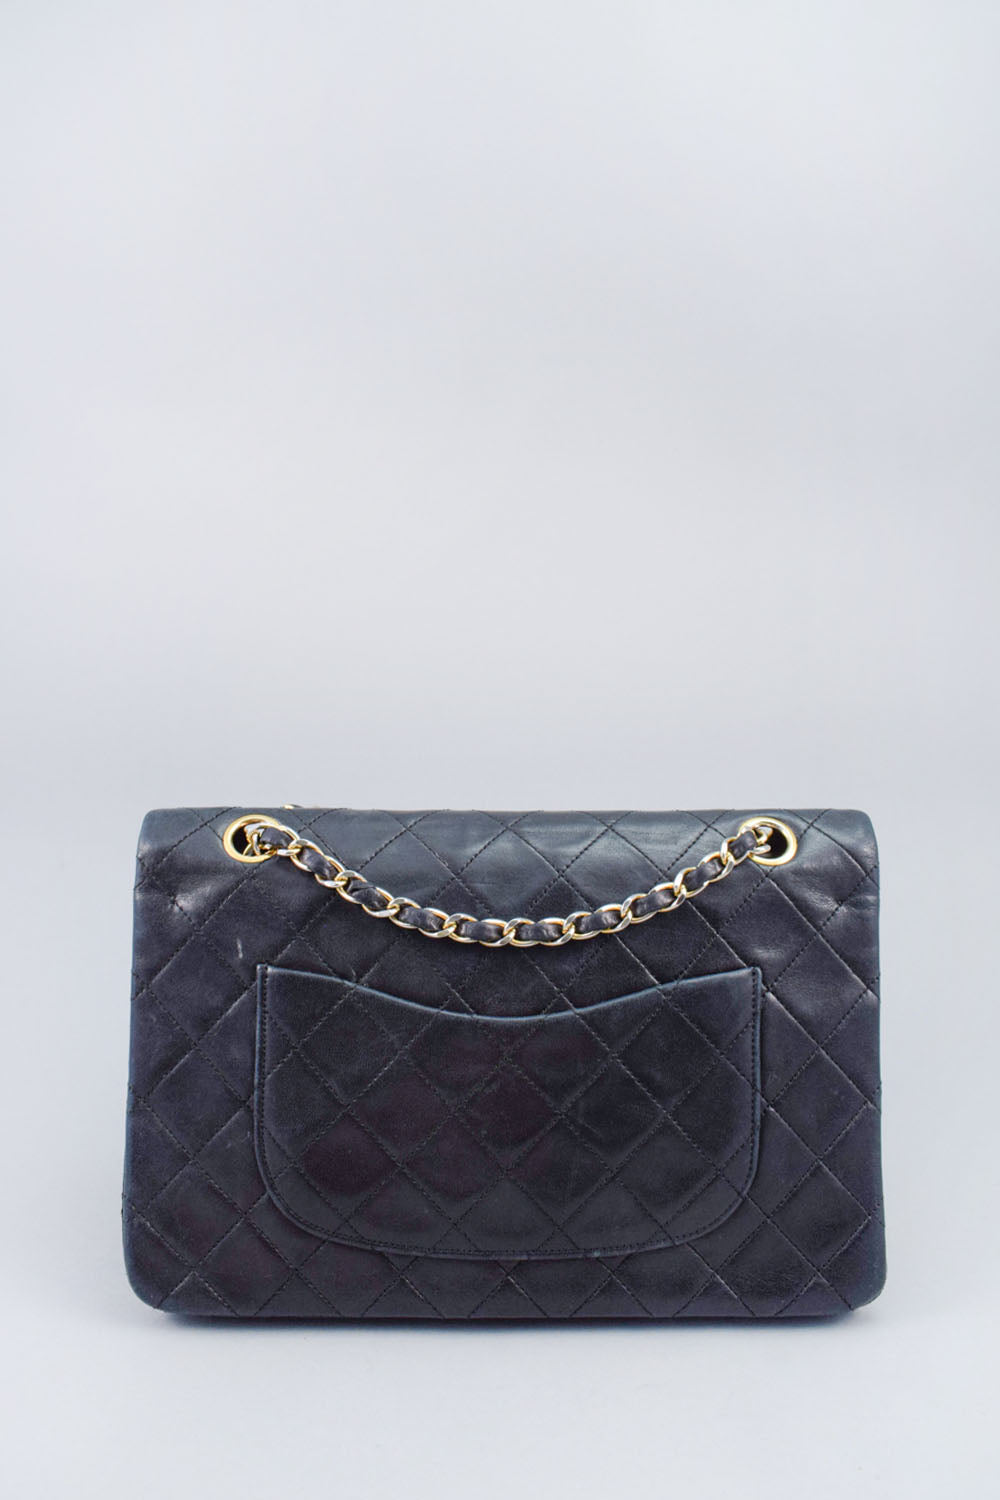 Chanel Black Vintage Classic Medium Lambskin Double Flap